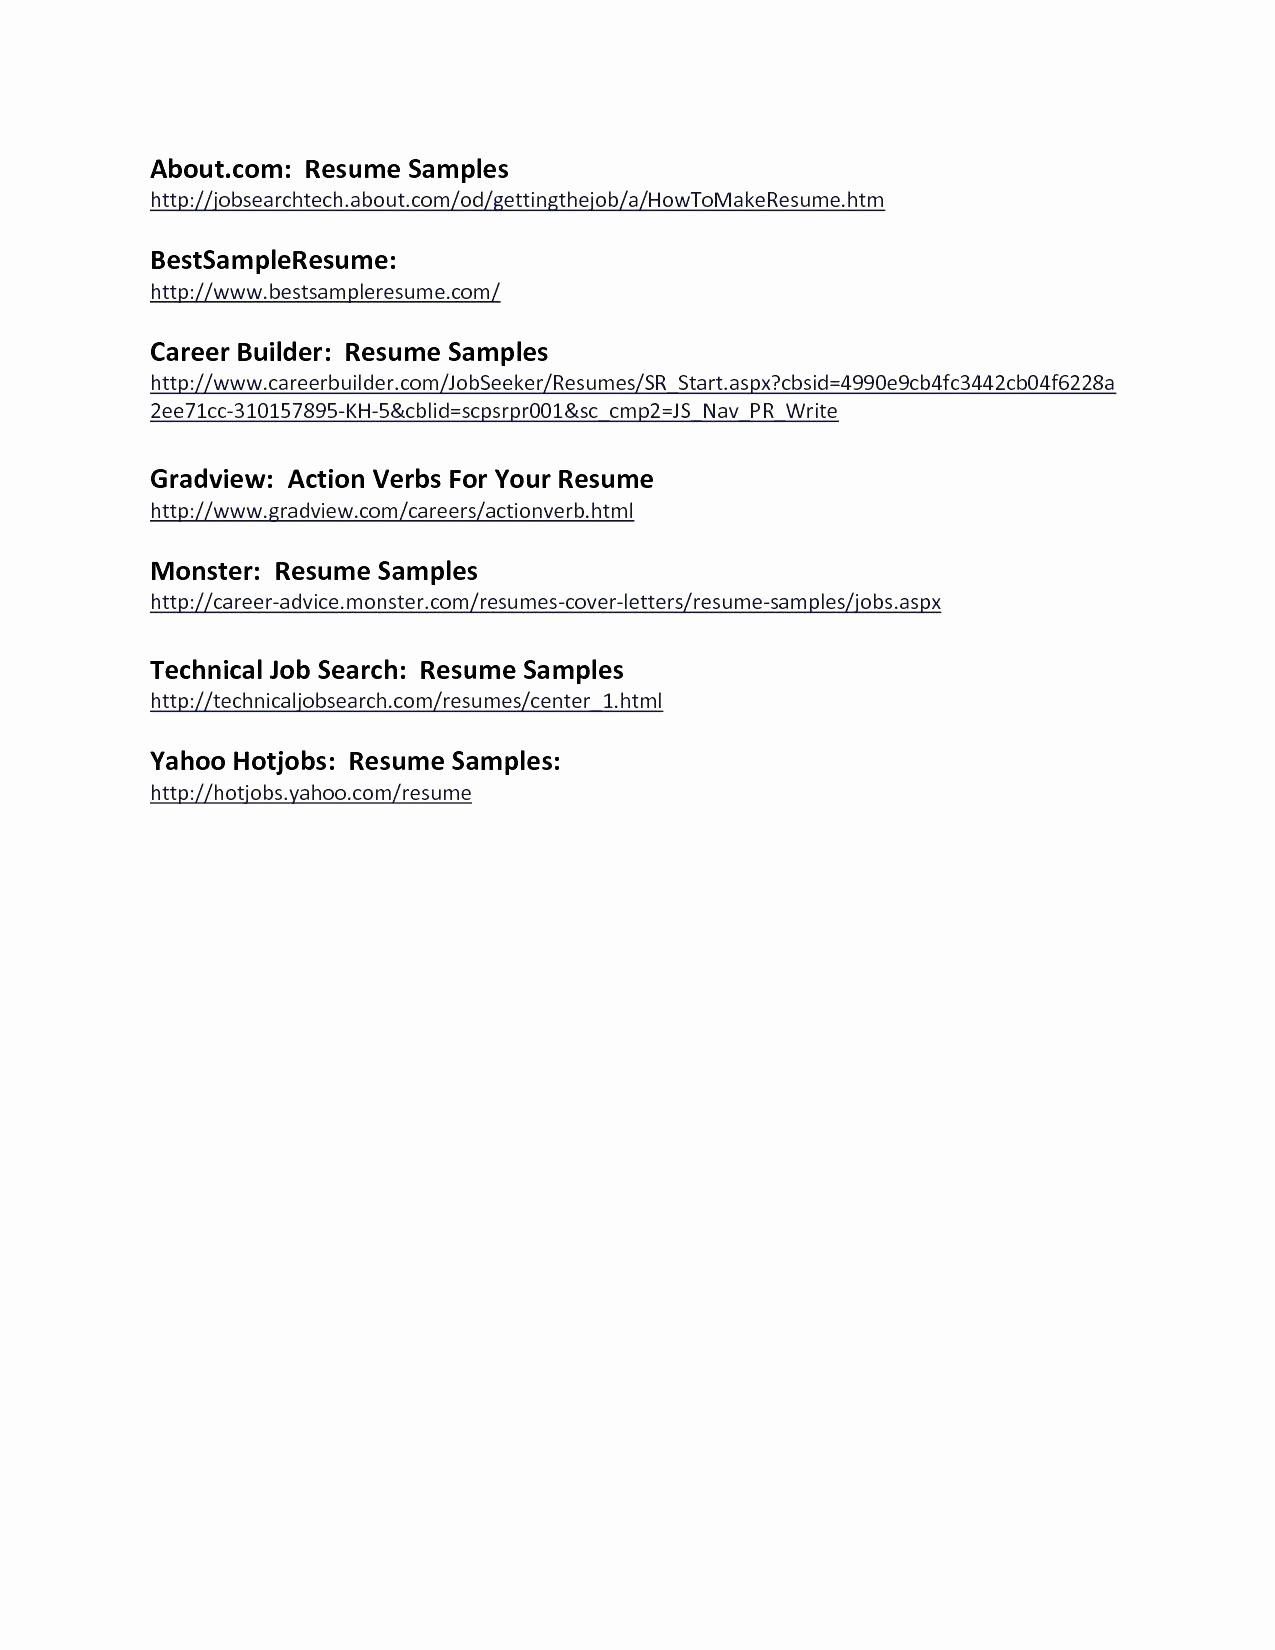 Professional Resume Outline - 24 Resume Outline Examples